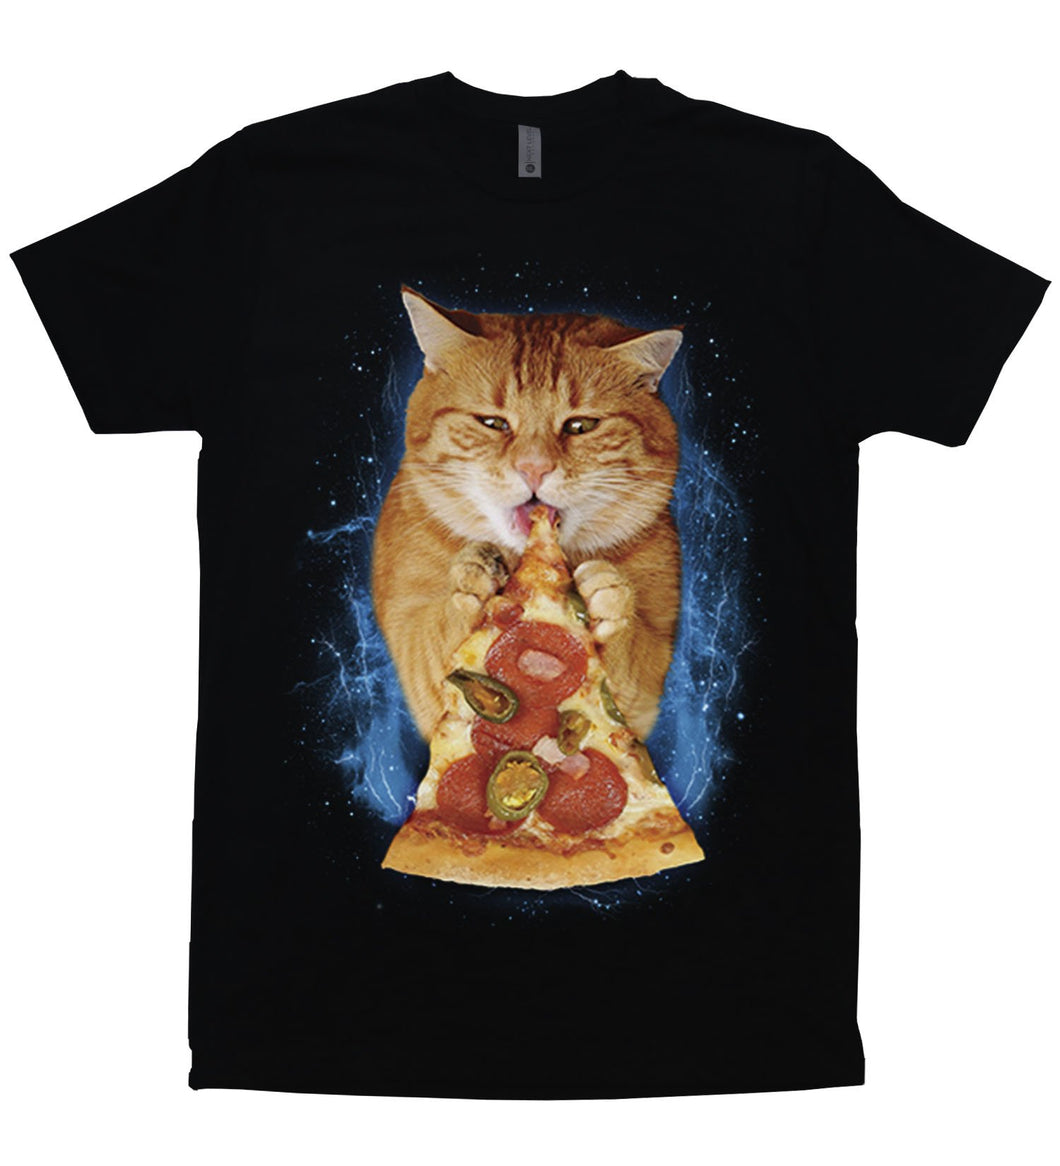 A hungry orange cat eating a slice of pepperoni and jalapeno pizza